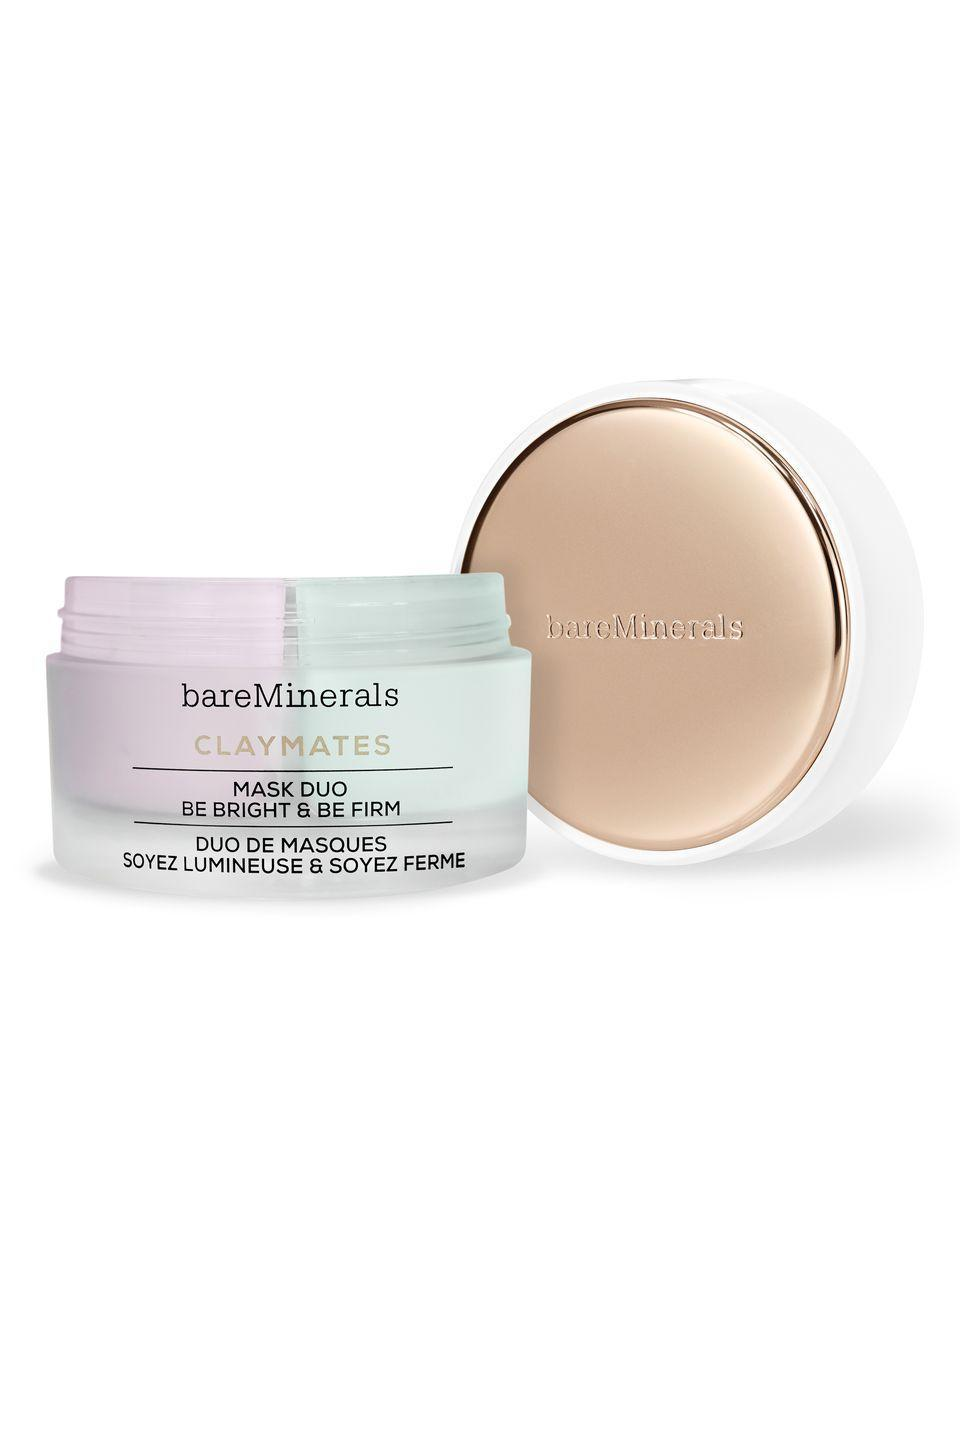 """<p>Use the Be Pure side of this mask on areas of the face that need a deep cleansing — then pop the Be Dewy side onto areas that are dry or red. You'll get targeted results <em>exactly </em>where you need them.</p><p>BareMinerals Claymates Be Pure and Be Dewey Mask Duo, $35, <a href=""""https://www.bareminerals.com/skincare/masks/claymates-be-pure-%26-be-dewy-mask-duo/US86007.html"""" rel=""""nofollow noopener"""" target=""""_blank"""" data-ylk=""""slk:bareminerals.com"""" class=""""link rapid-noclick-resp"""">bareminerals.com</a></p>"""